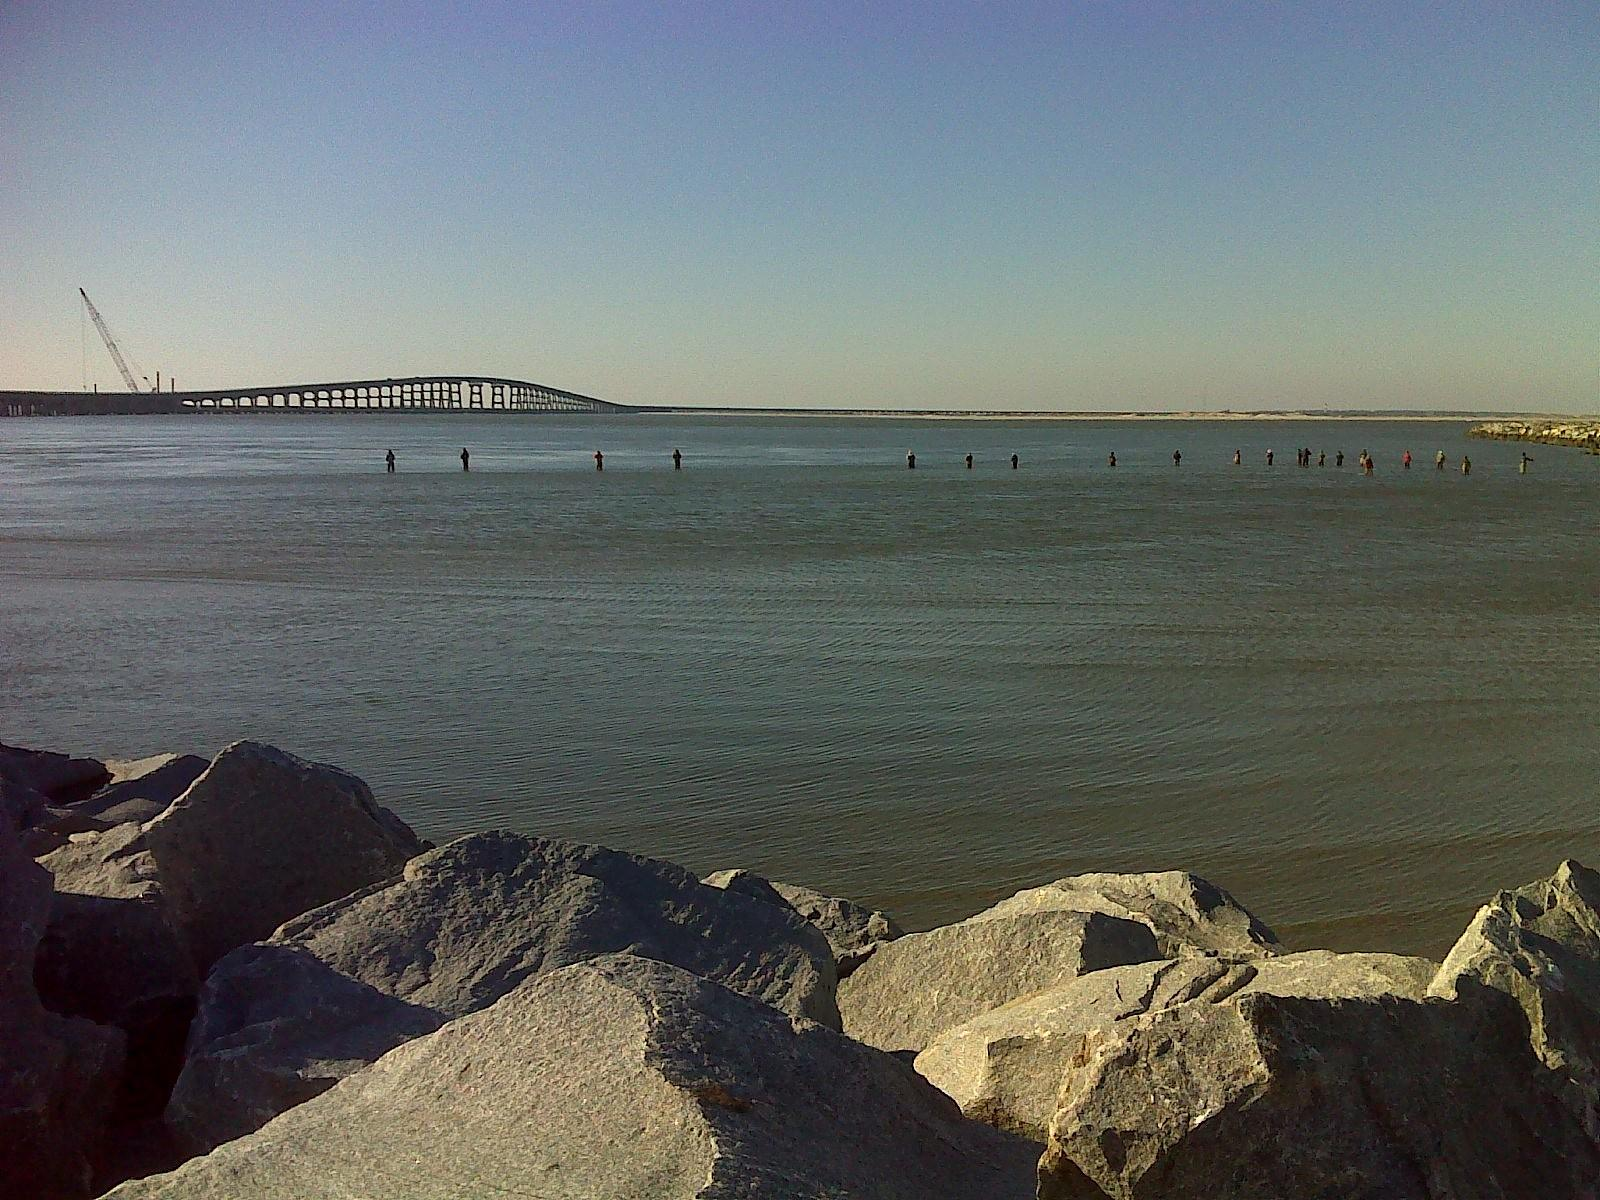 Photo of Mountains-to-Sea Trail, Oregon Inlet Bridge, no protection from traffic 16-FEB-14 03:20:45 PM